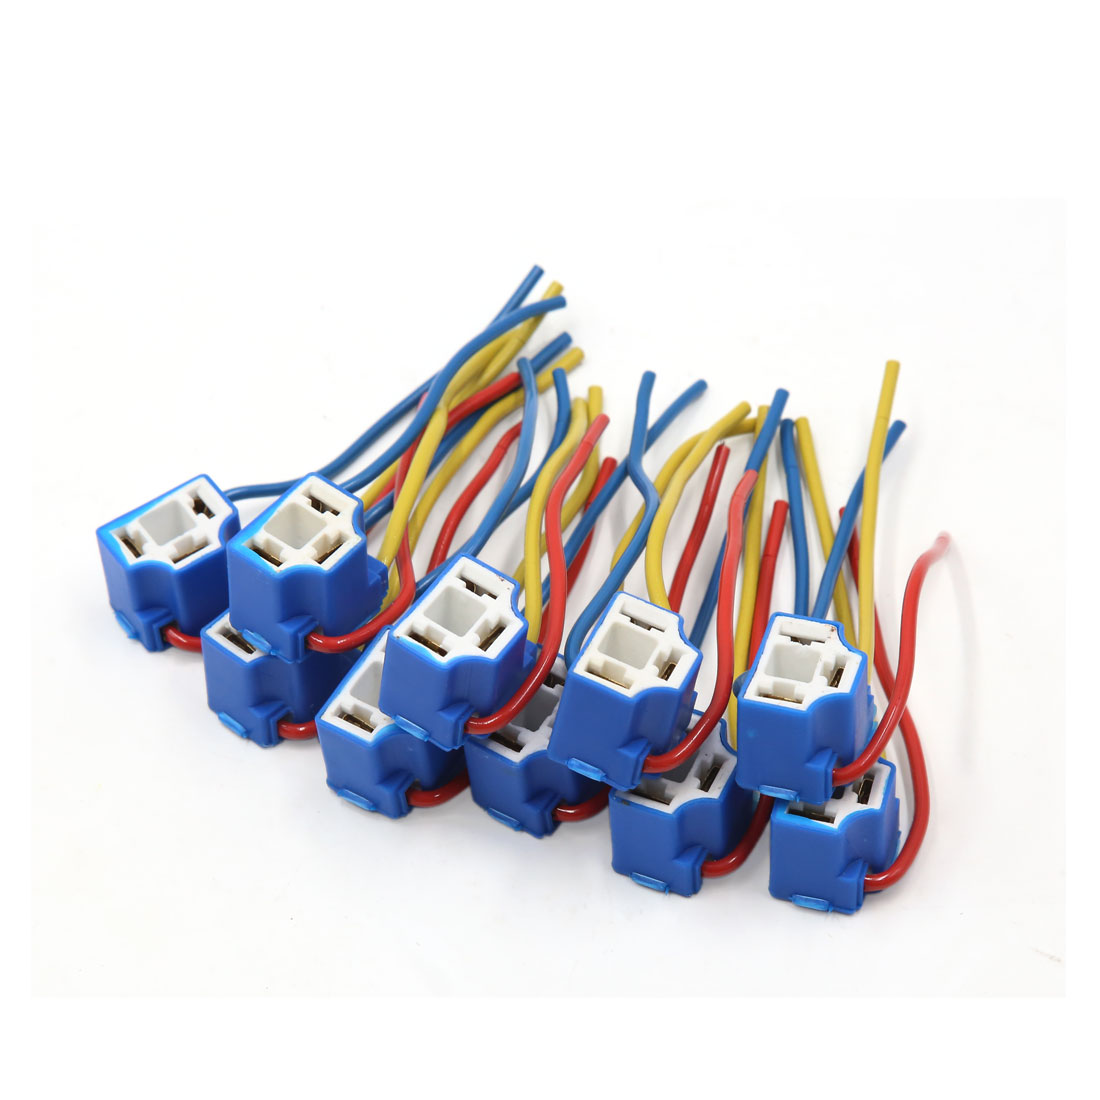 medium resolution of 10pcs 3 wires car h4 foglight lamp bulb extension wire harness socket connector